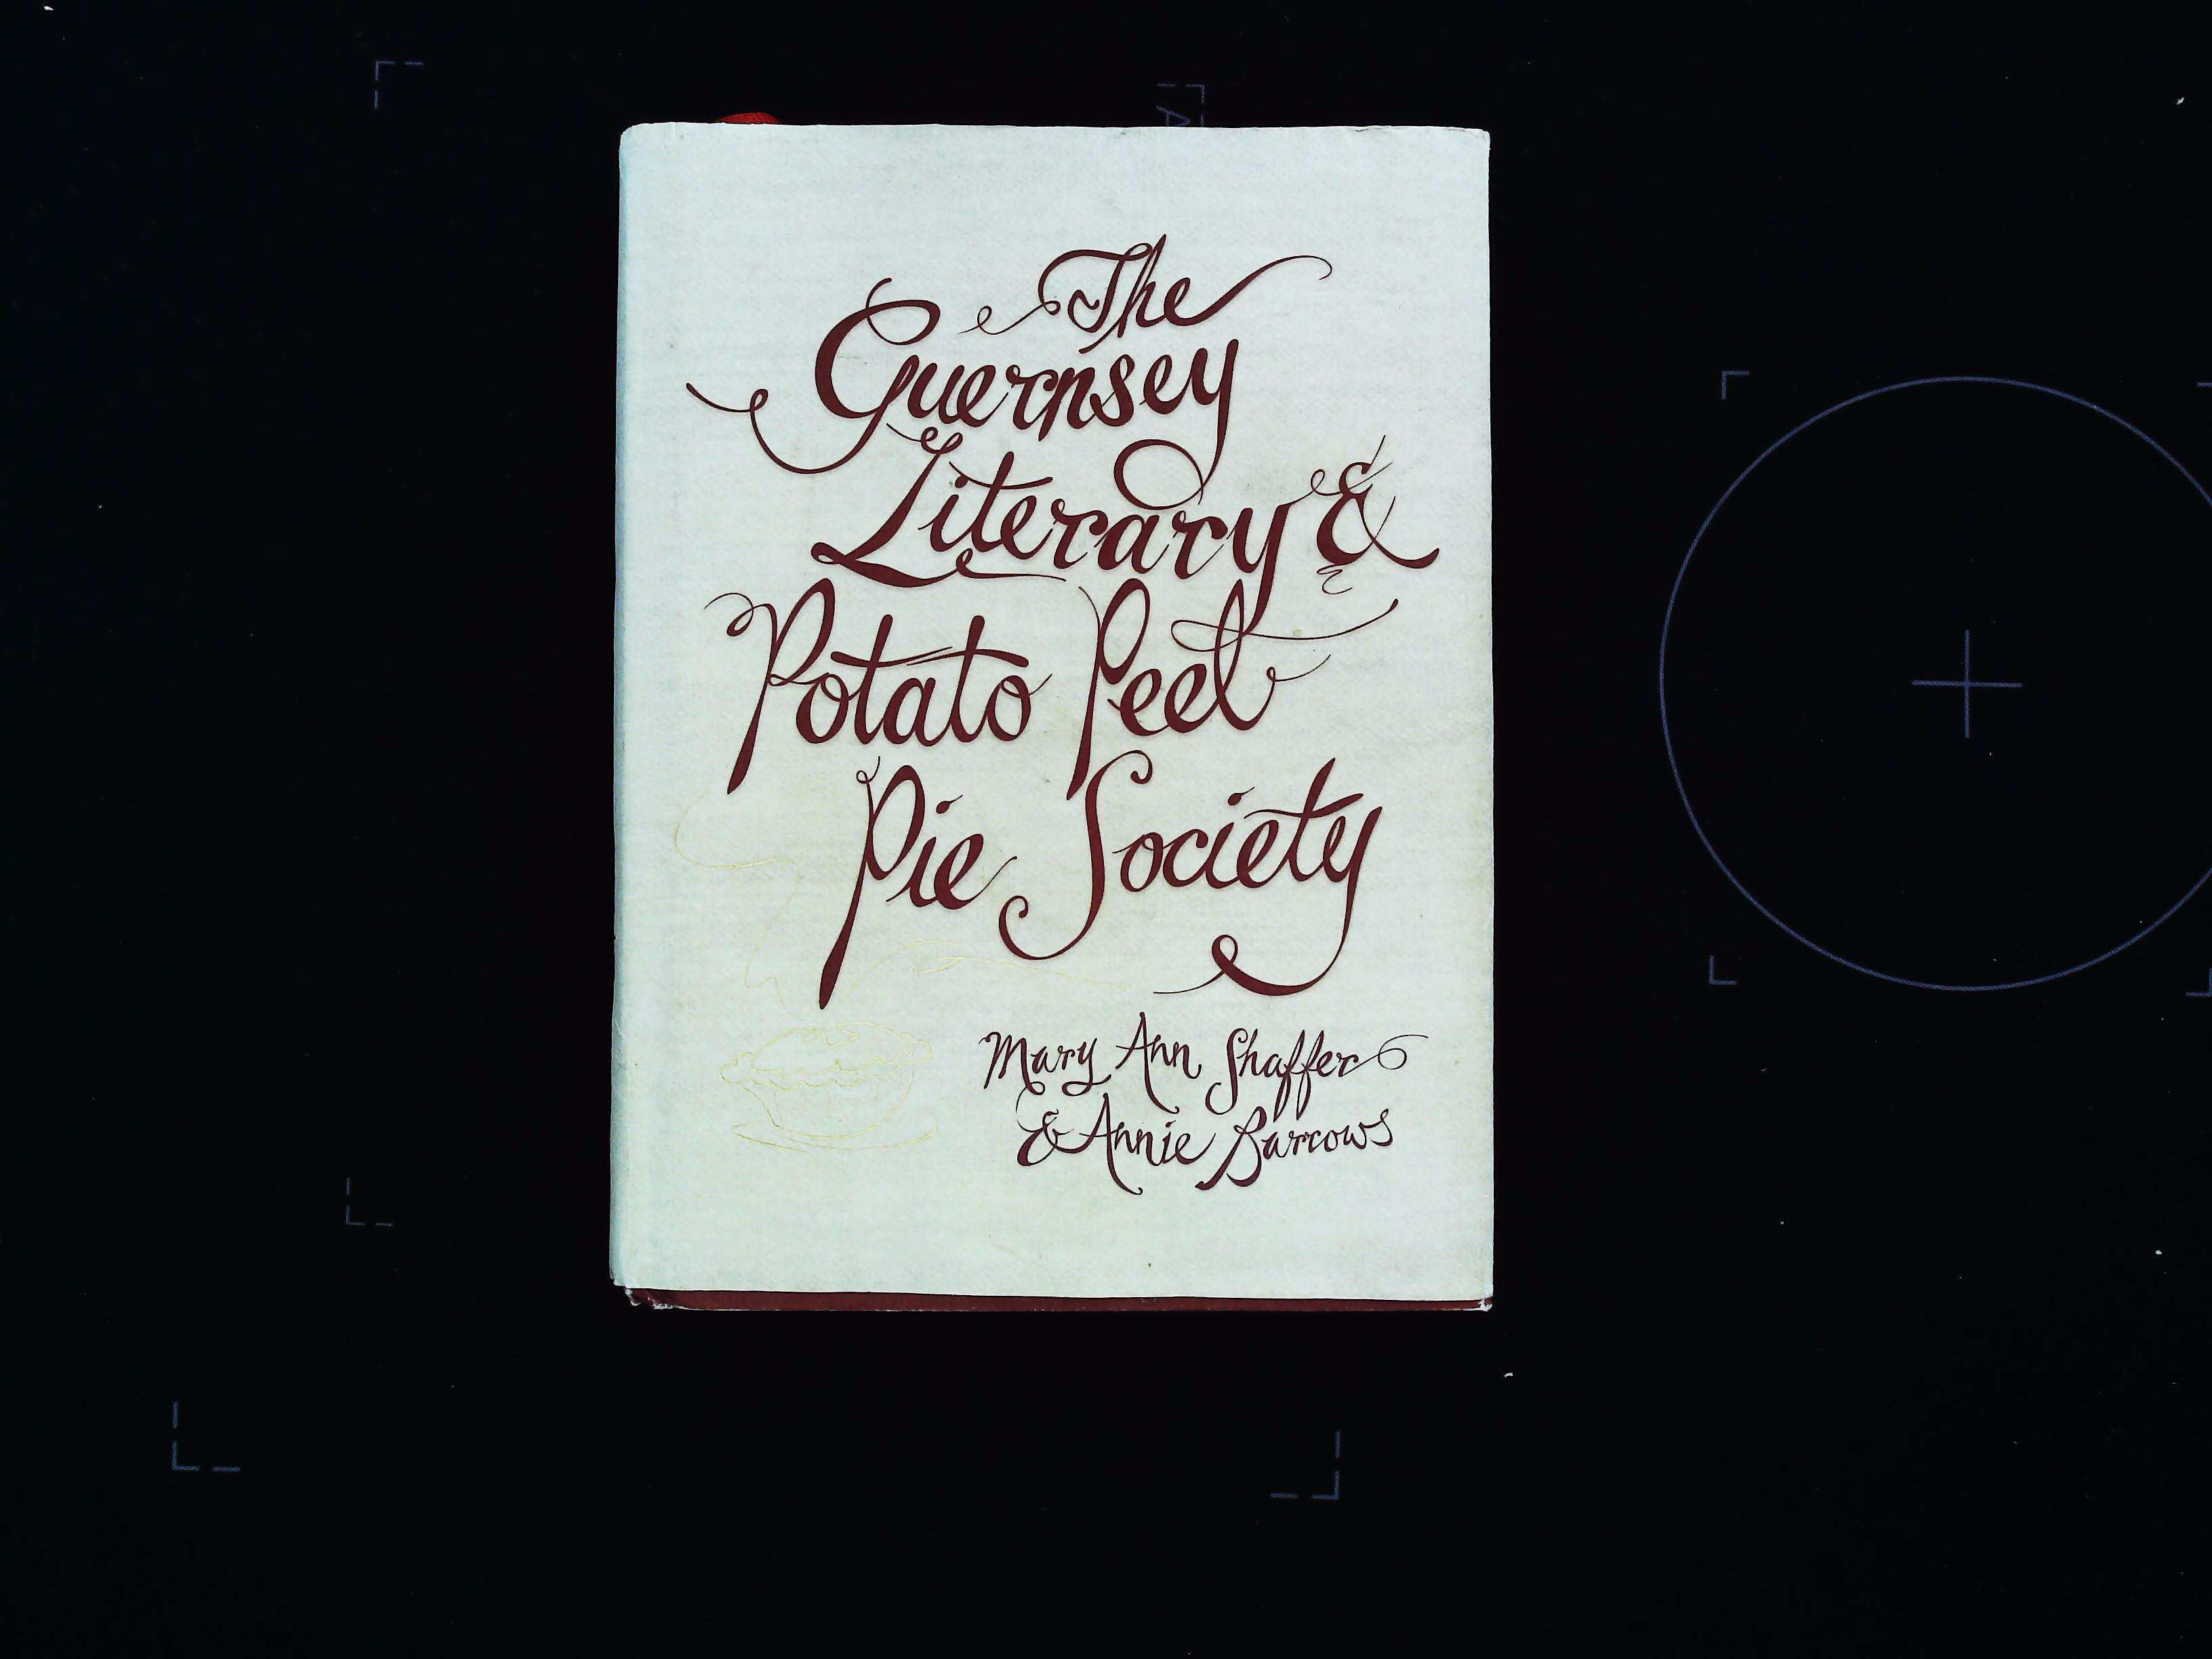 The Guernsey Literary and Potato Peel Pie Society hardback book by Mary Ann Shaffer and Annie